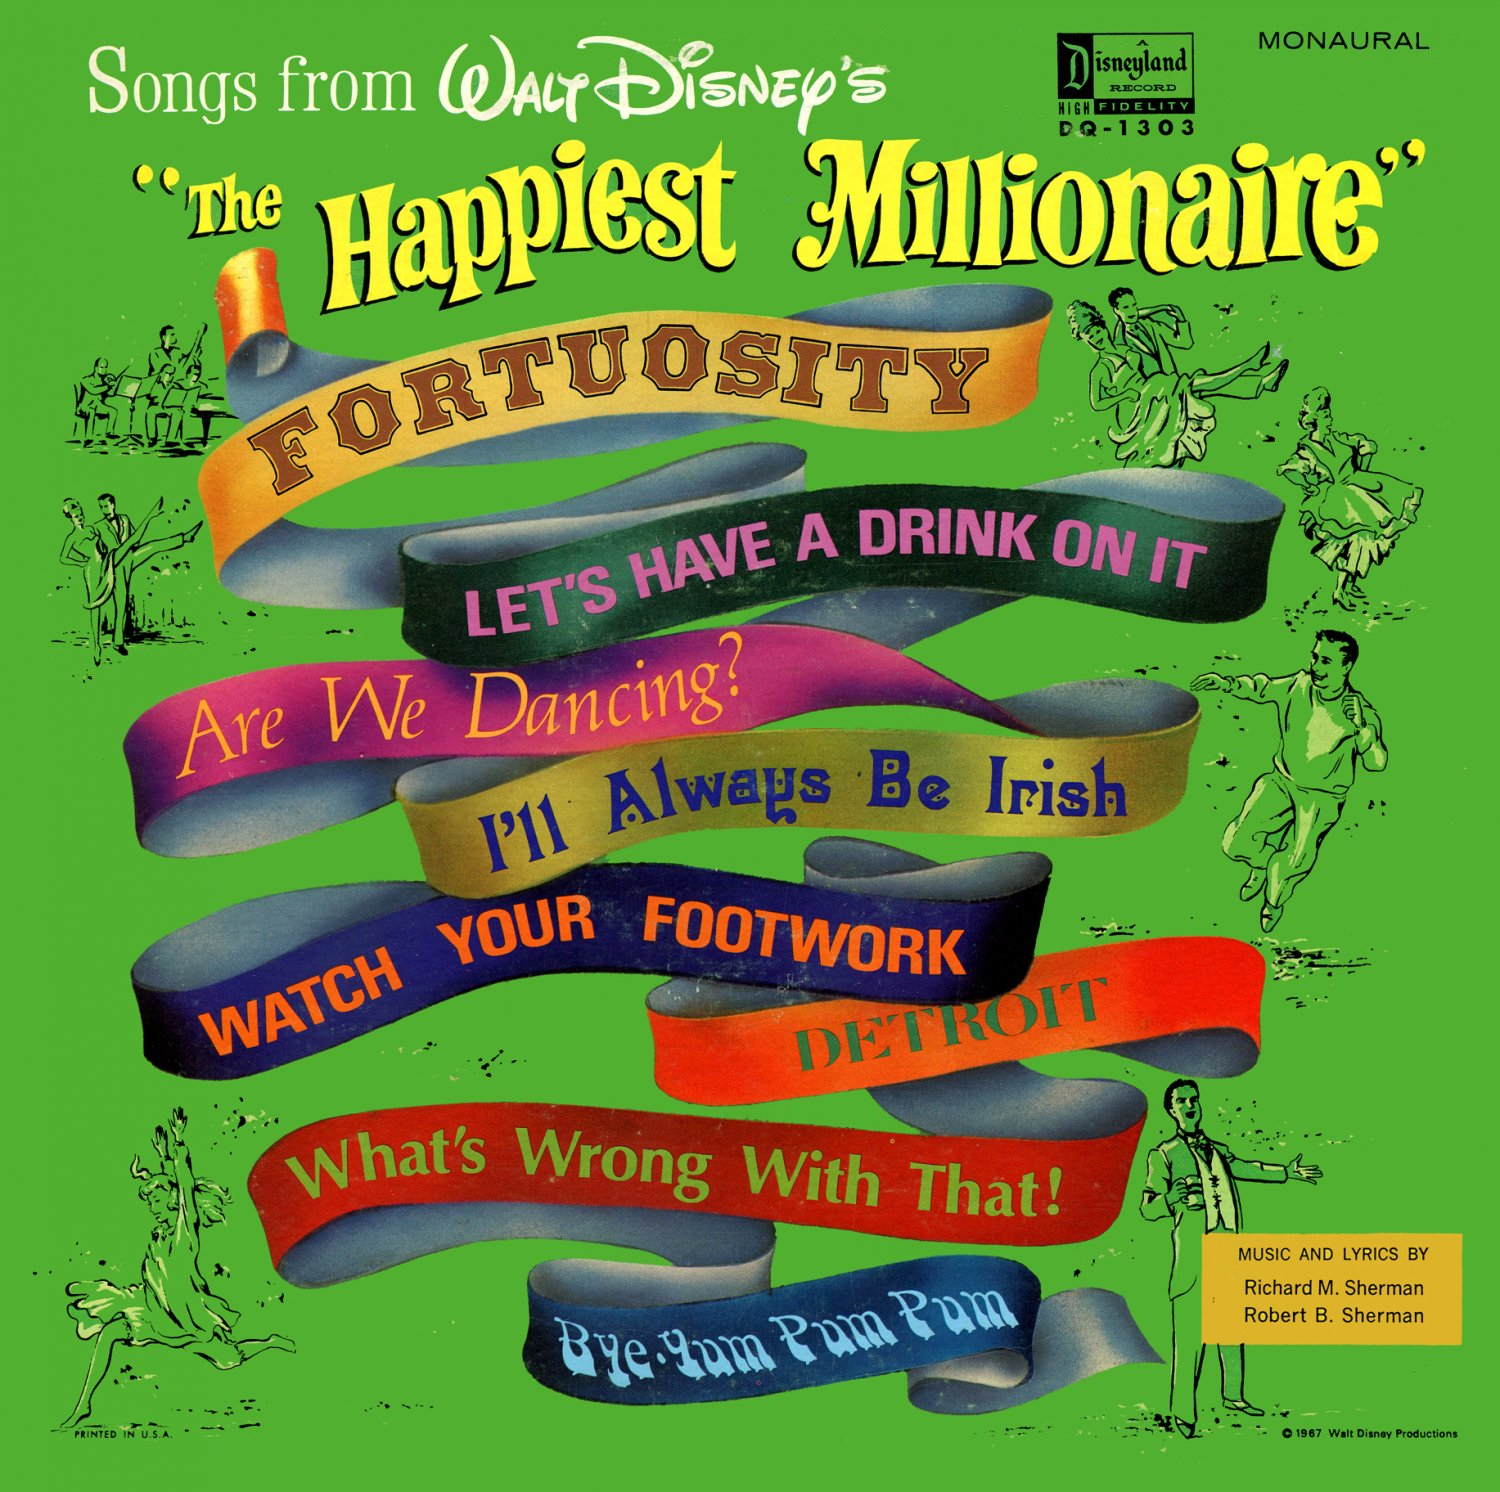 Songs From The Happiest Millionaire - Walt Disney Soundtrack, Sherman Brothers LP/CD